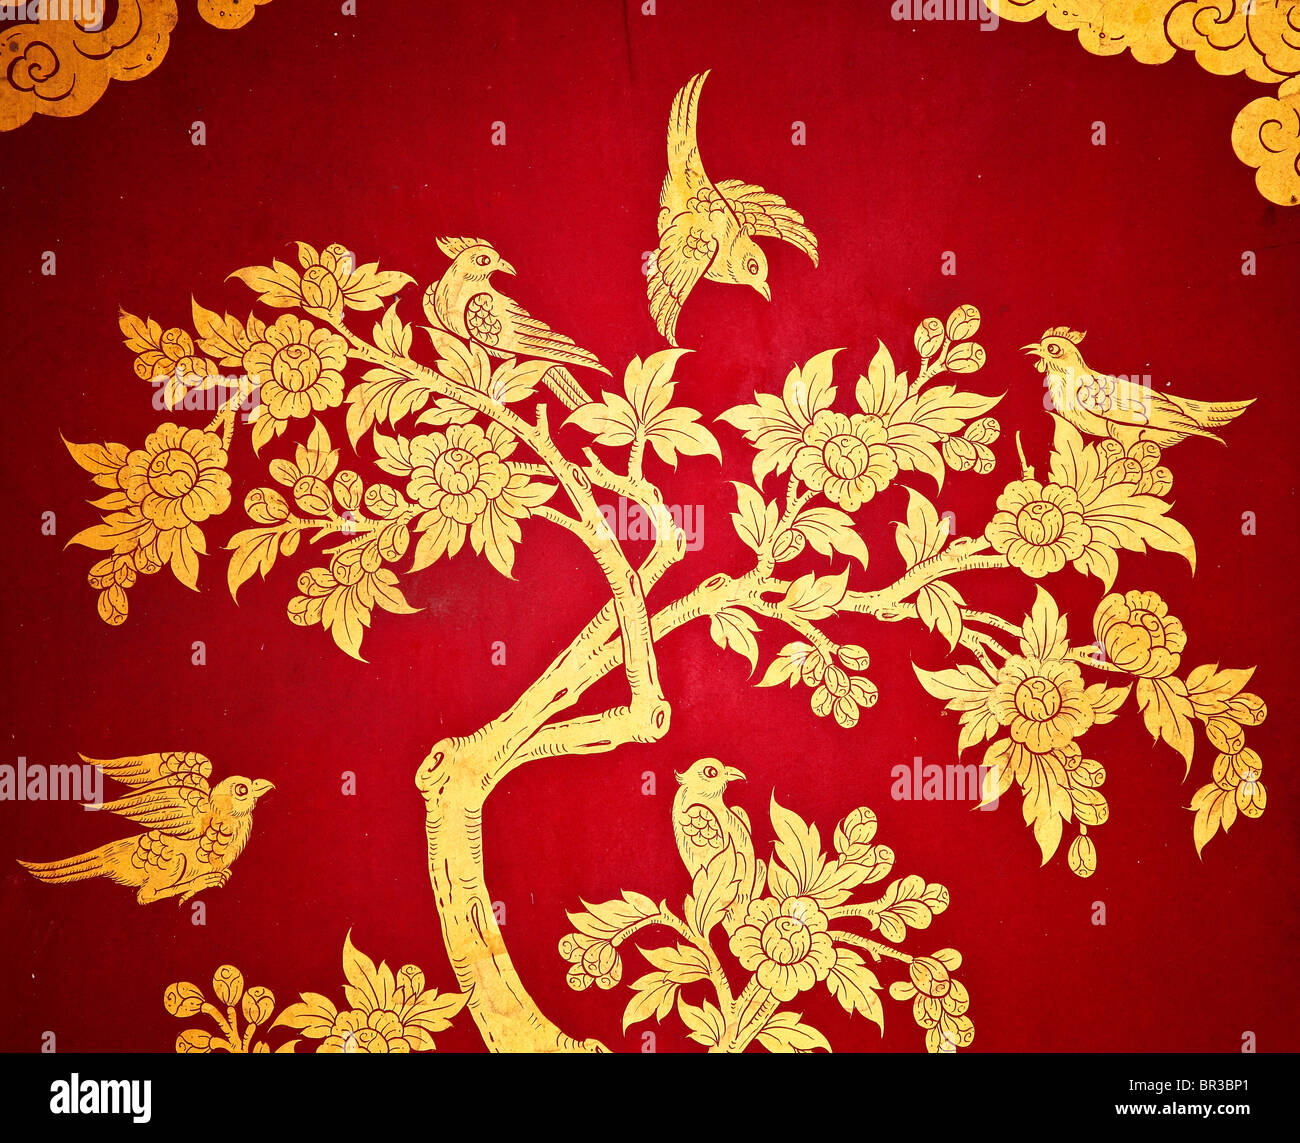 ancient asian art panel with gold decoration - Stock Image